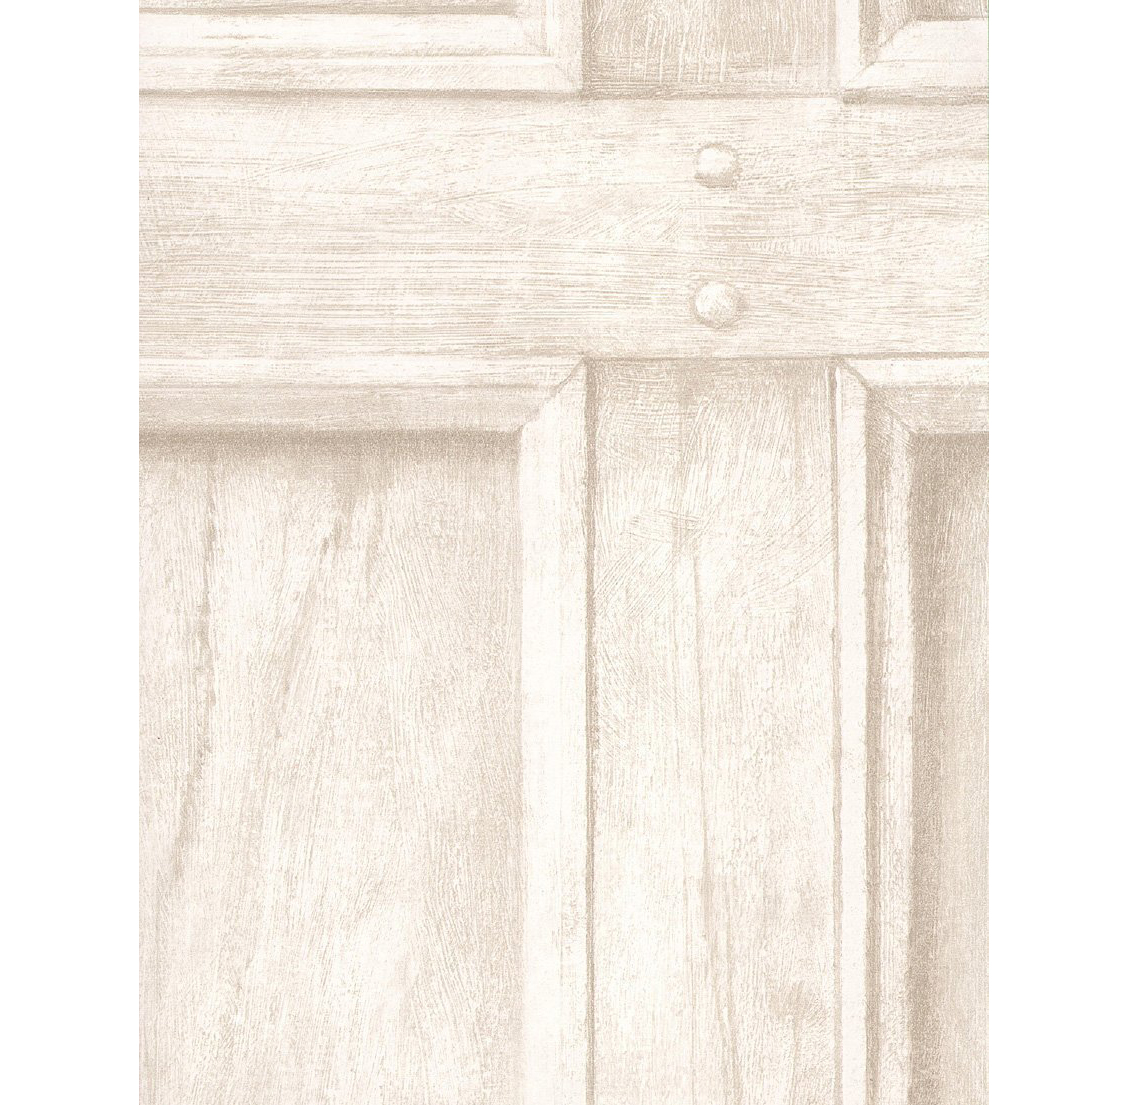 Traditional Aged Wood Panel Wallpaper - Ivory